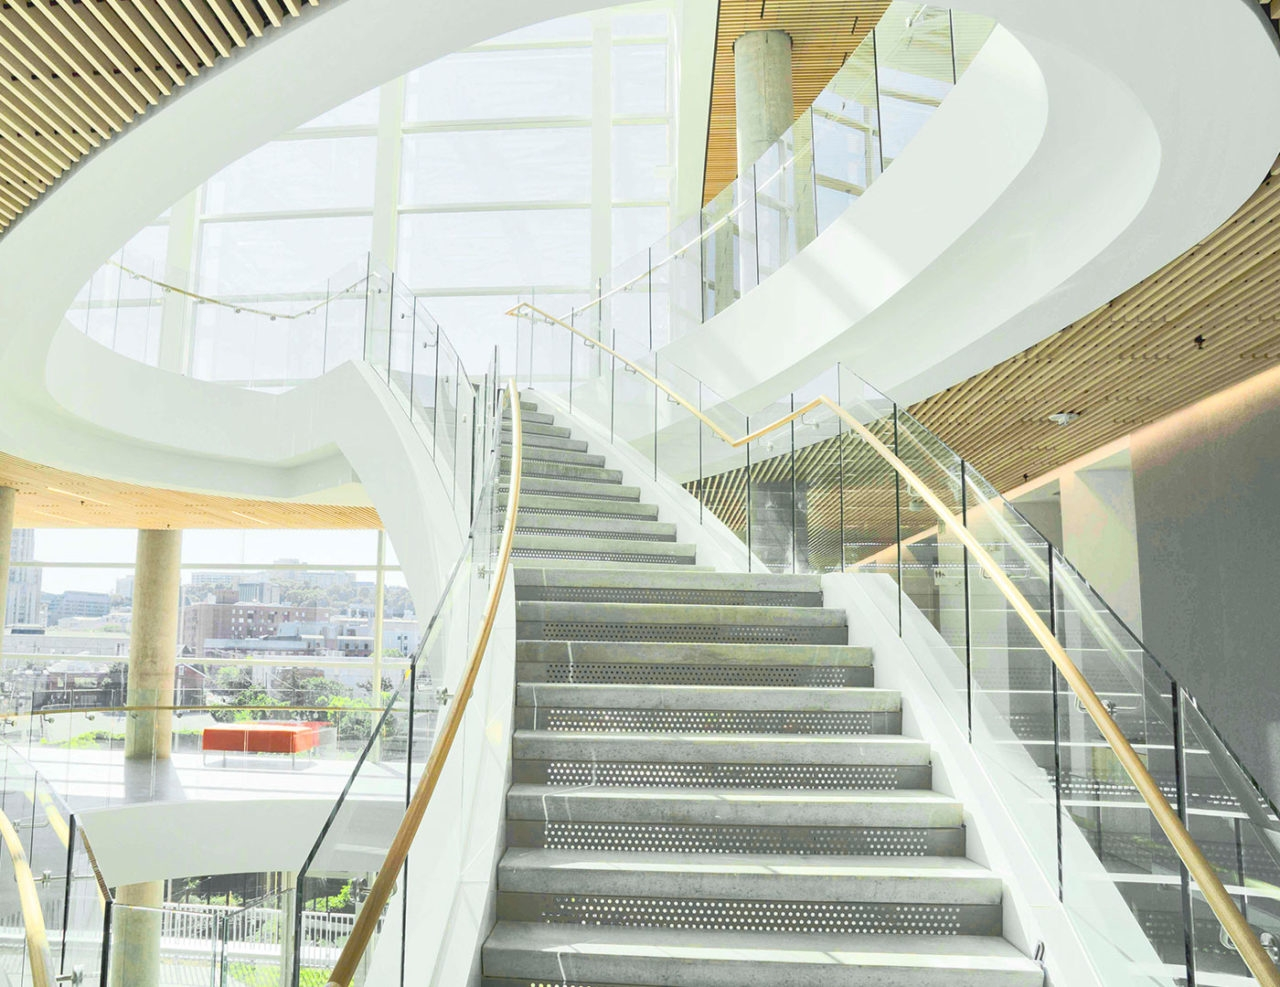 Base Shoe Commercial Glass Railing Trex Commercial Products   Glass Panel Stair Railing   Toughened   Square   Framed Glass   Staircase   Banister